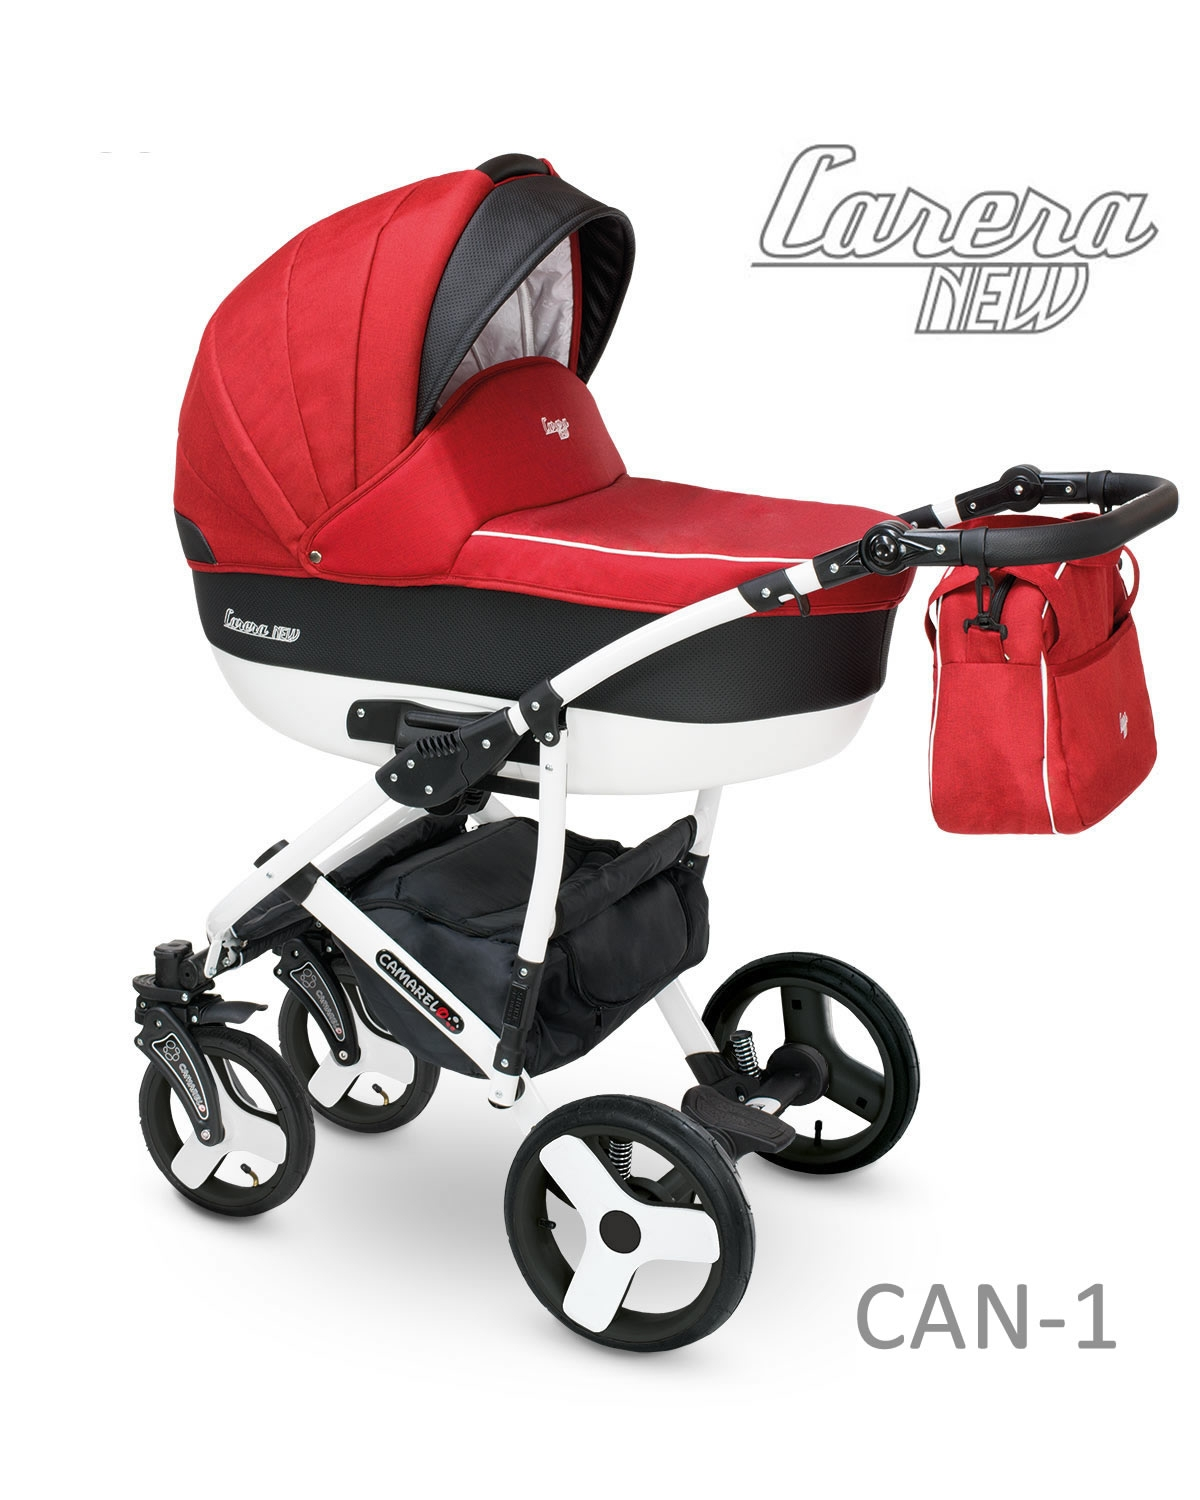 Carucior copii 2 in 1 Carera New Camarelo Can-1 imagine